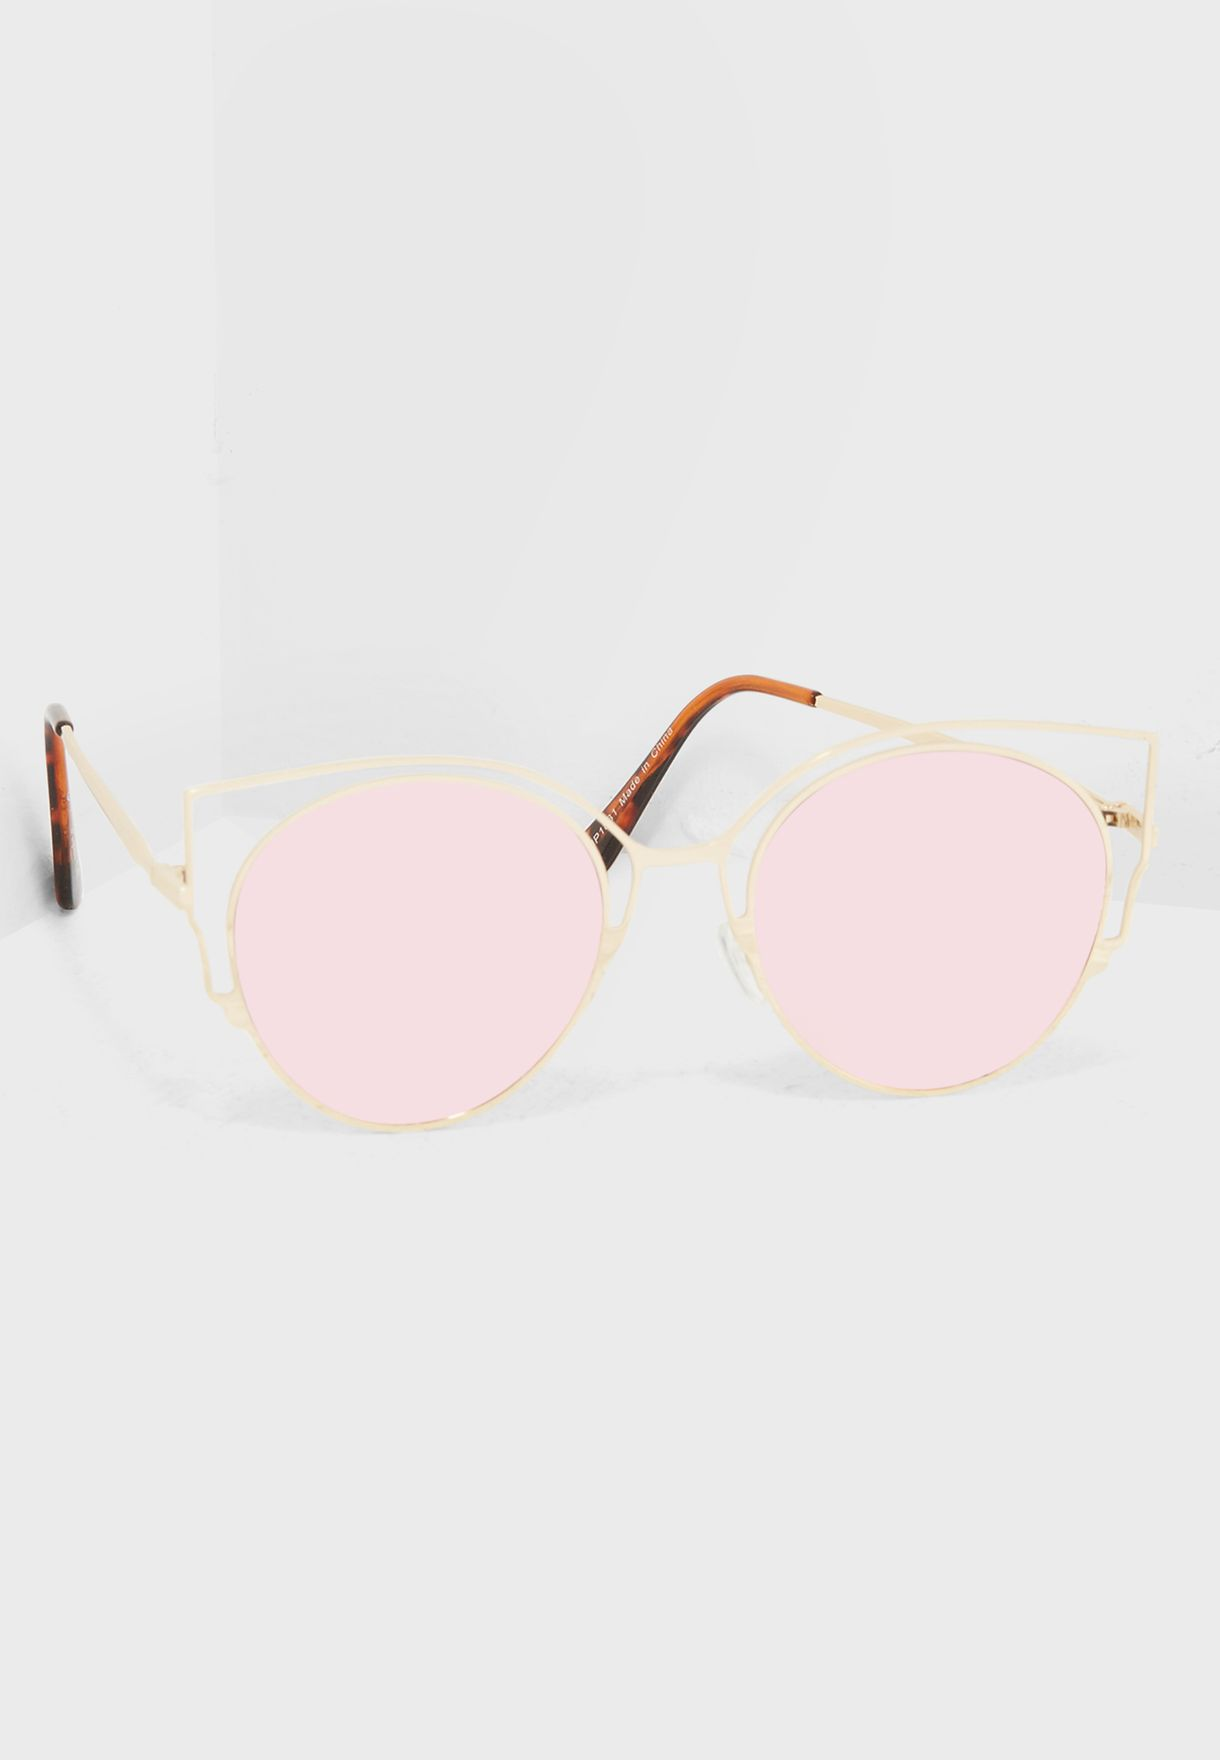 0be109bb82 Shop Jeepers Peepers gold Cutout Cat Eye Sunglasses JP-1831 for Women in  Saudi - JE122AC66ITH